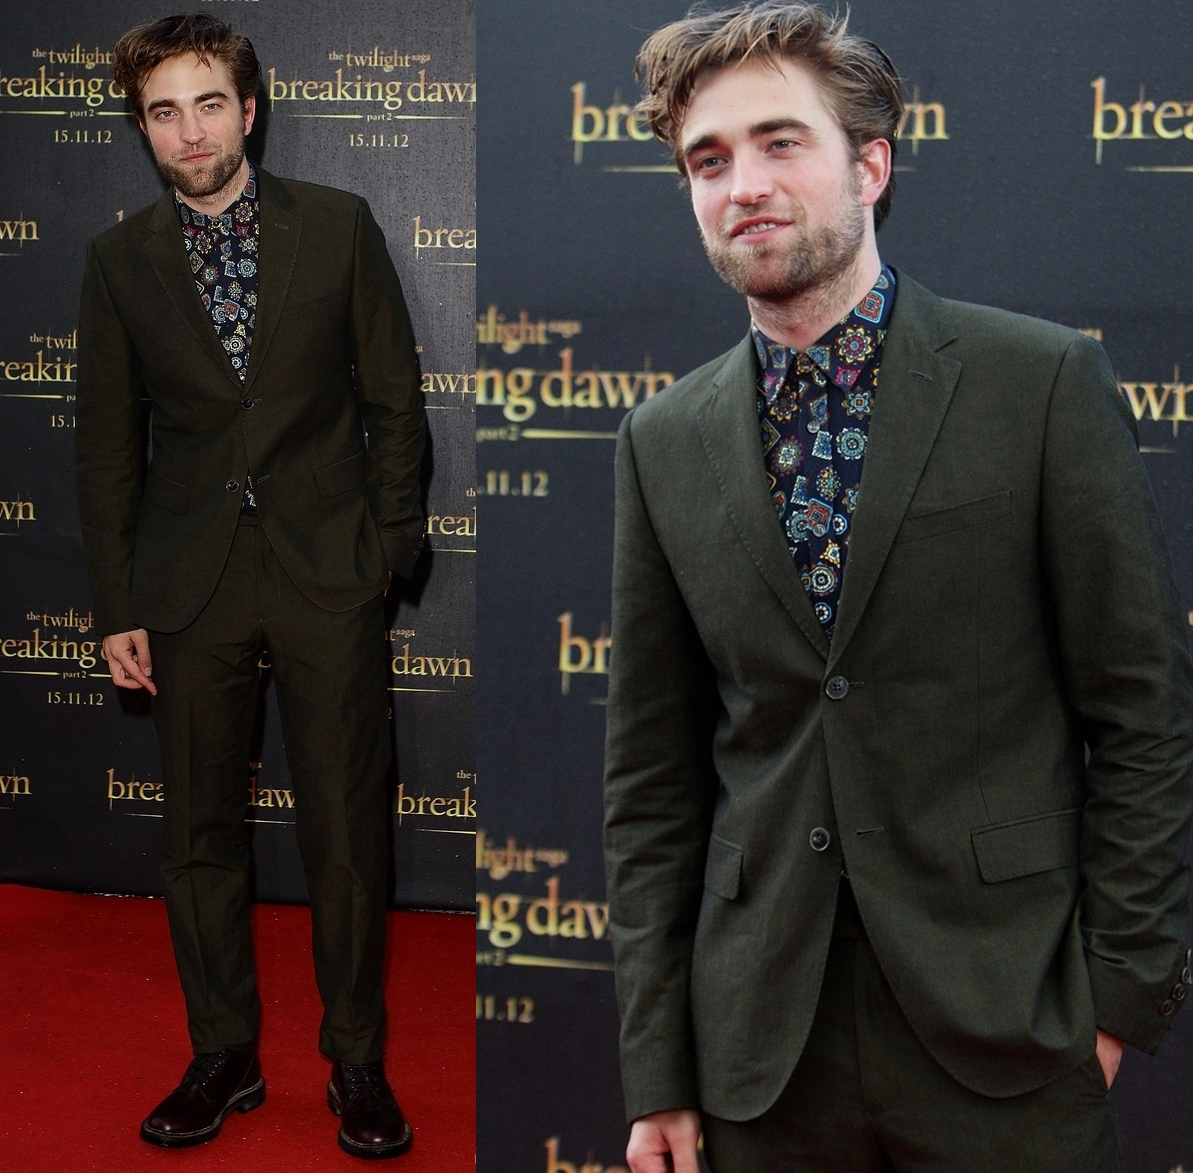 http://2.bp.blogspot.com/-NFE8k4OS1Rc/UI060gQJQKI/AAAAAAAAF7Q/cWTlkCHbZfE/s1600/robert-pattinson-sydney+Robert+is+wearing+a+Kenzo+suit+and+shirt-horz.jpg